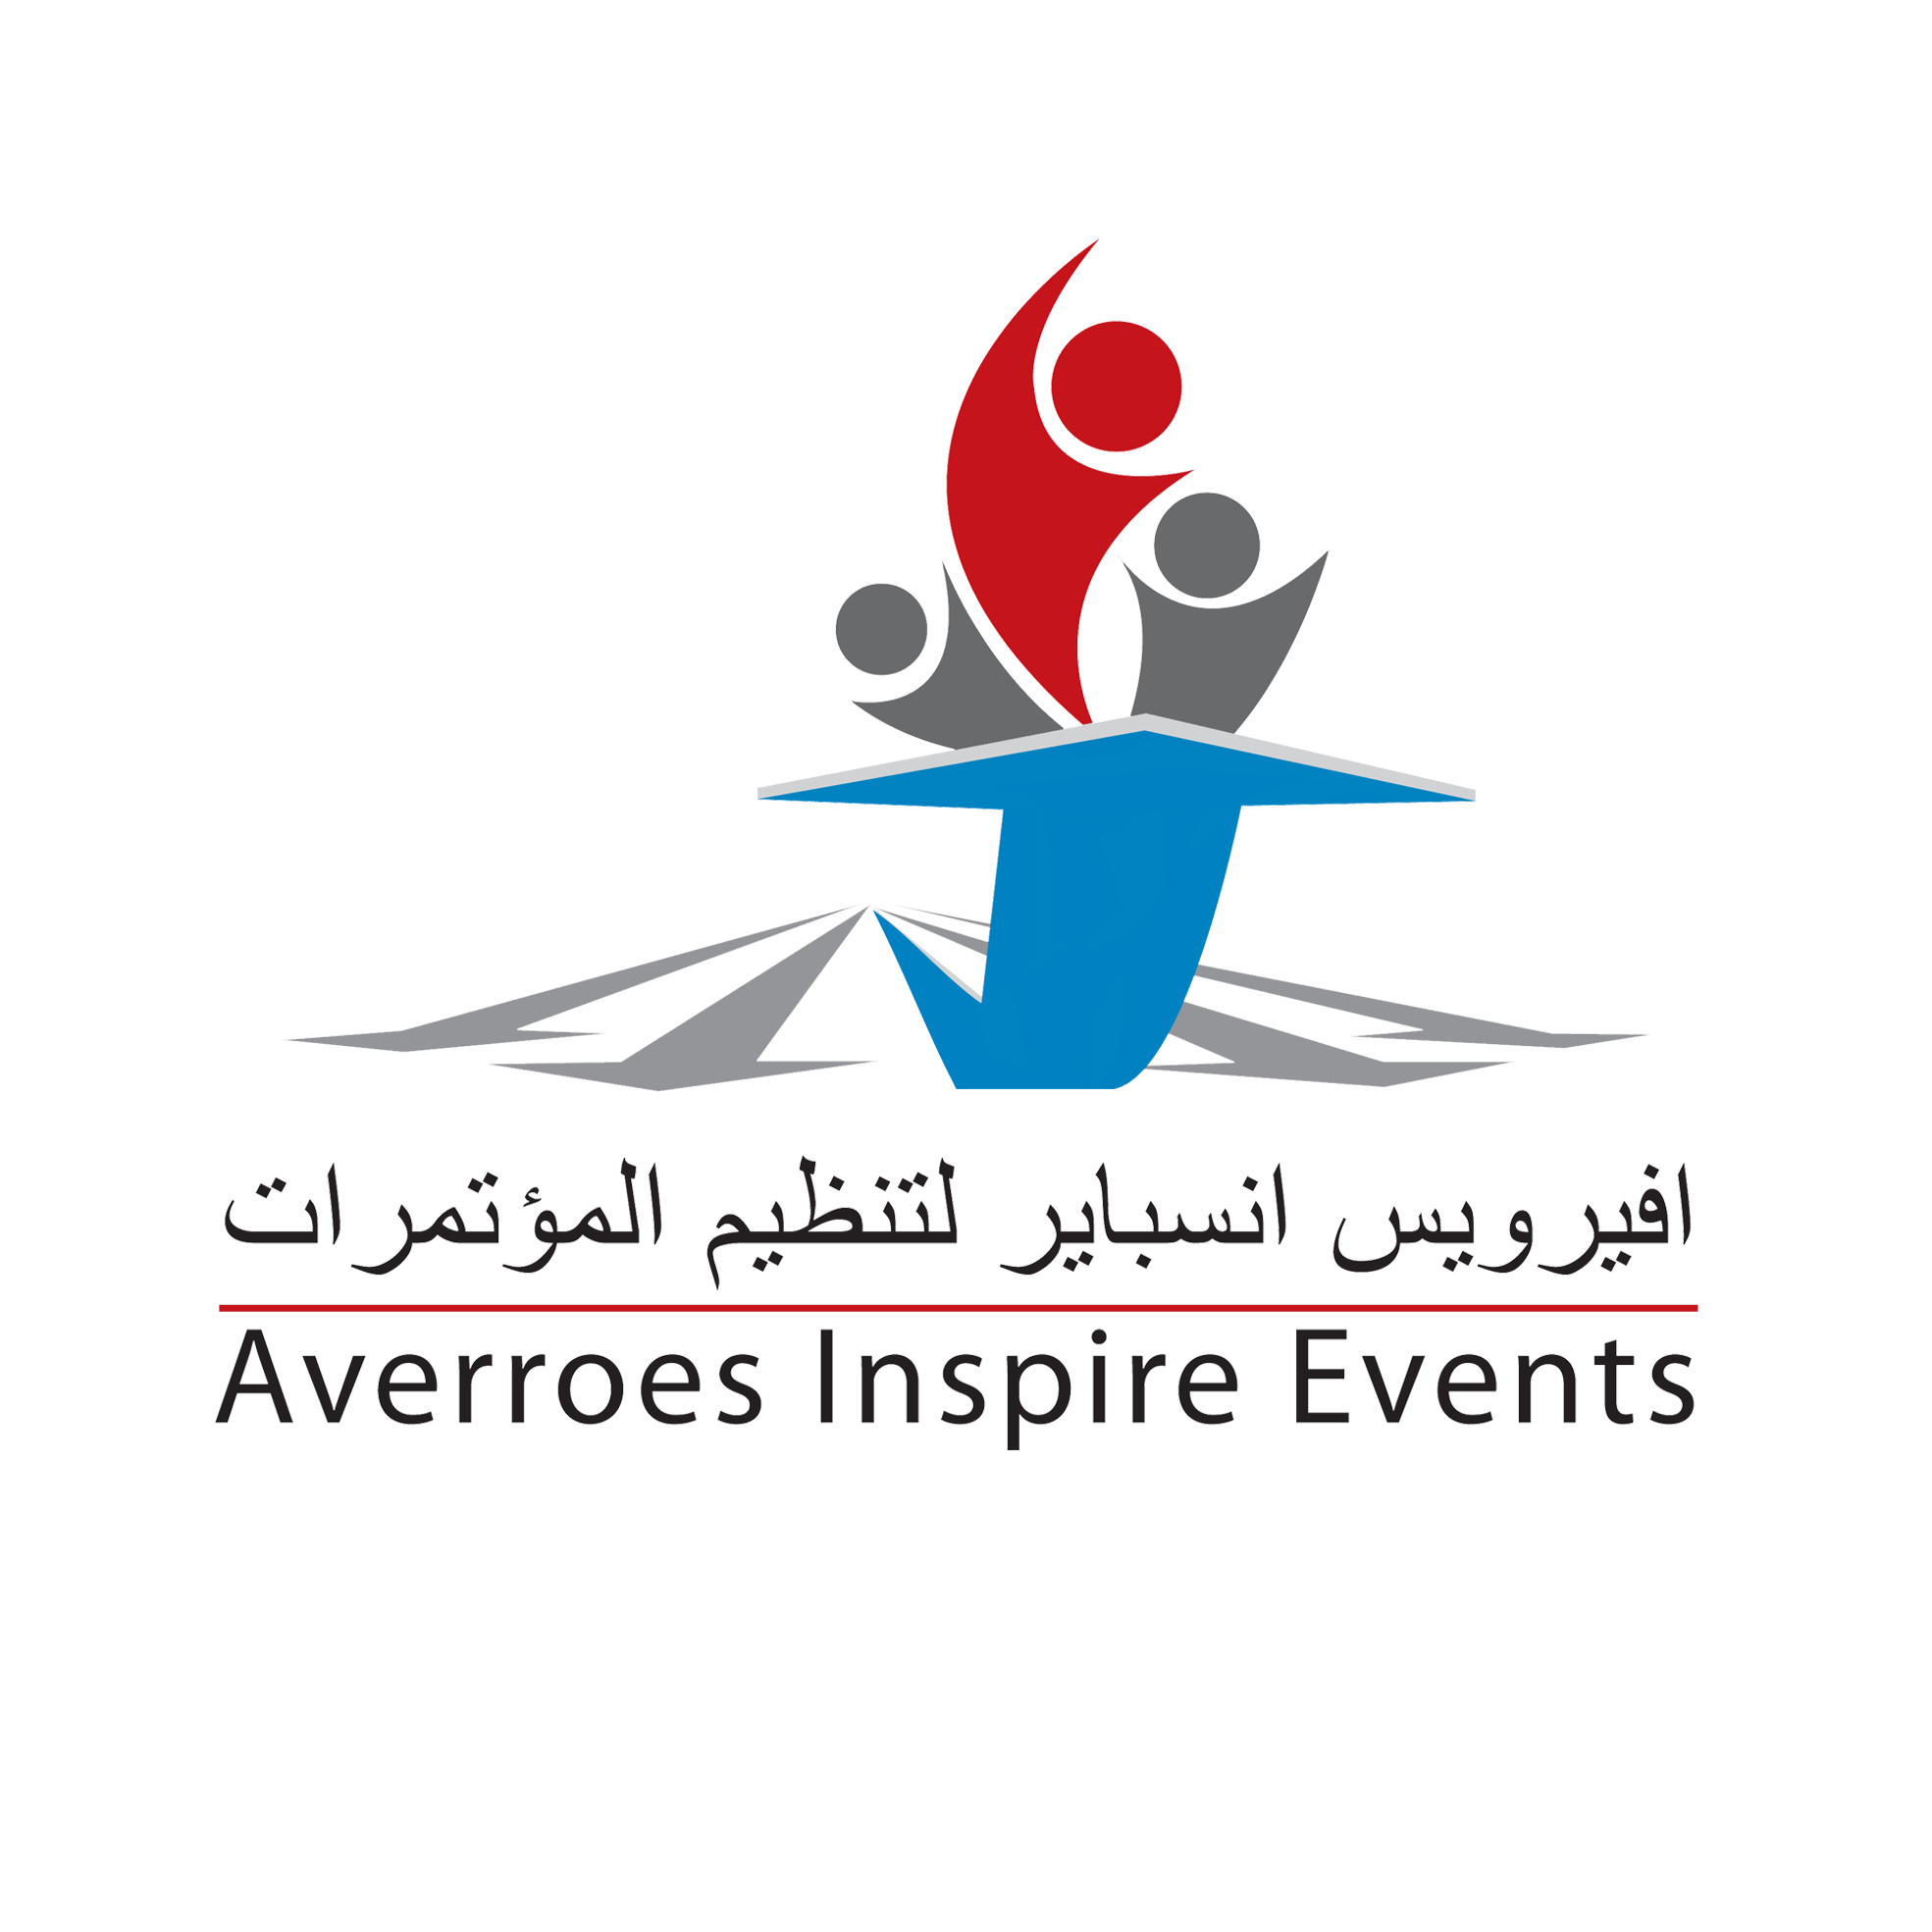 Averroes Inspire Events